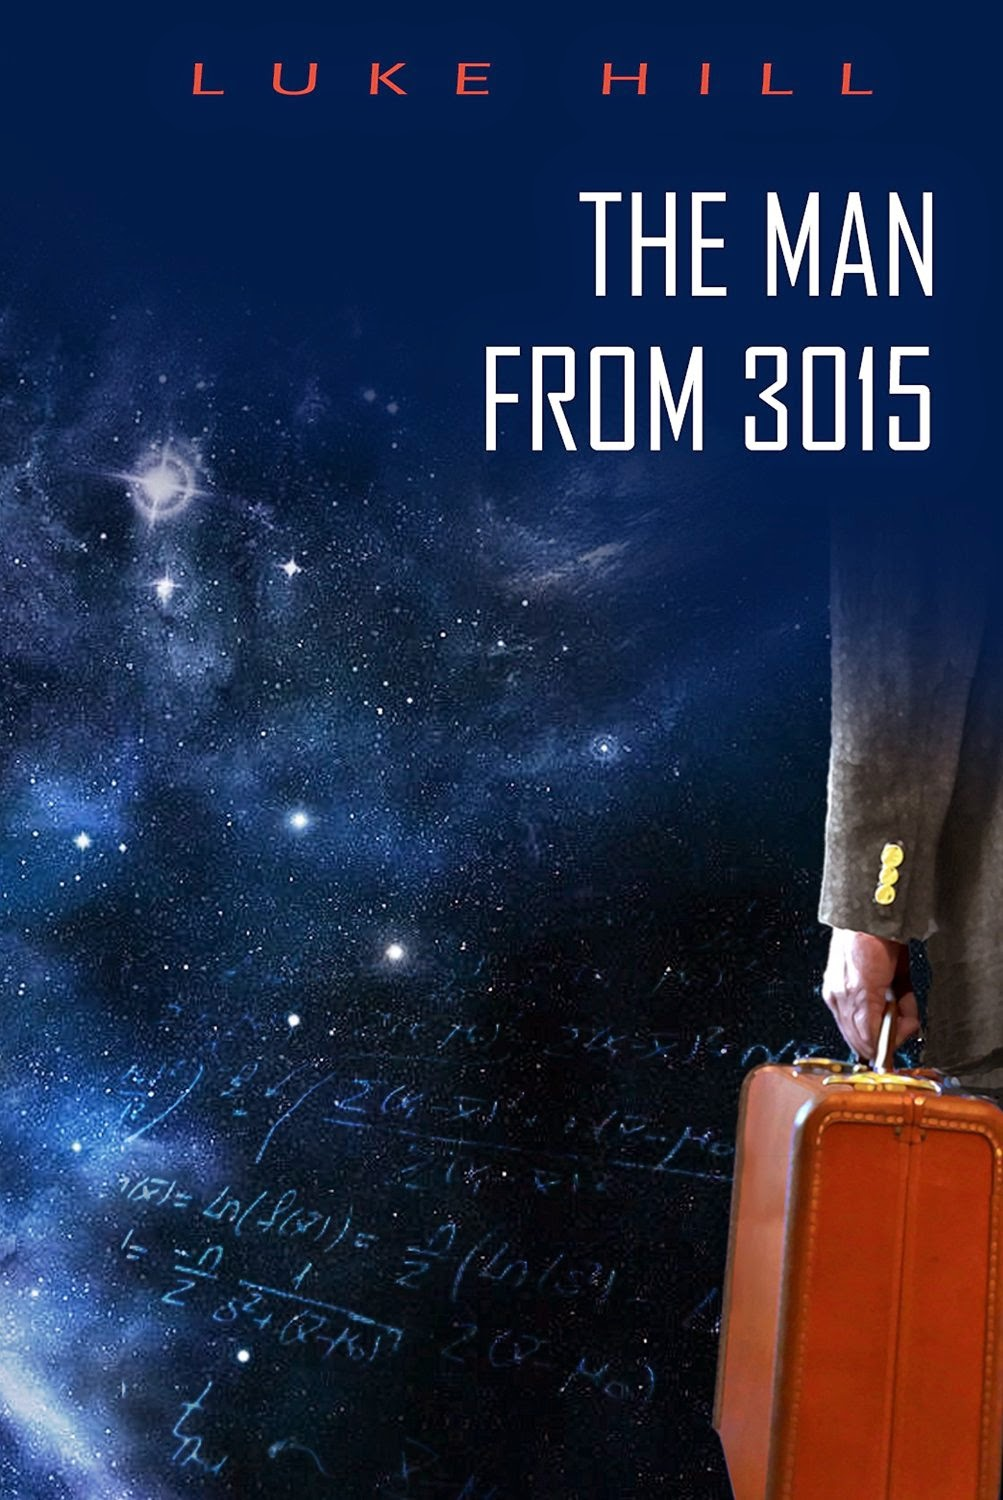 http://www.amazon.com/Man-3015-Luke-Hill-ebook/dp/B00MV9HQ1O/ref=sr_1_1?ie=UTF8&qid=1413155479&sr=8-1&keywords=the+man+from+3015